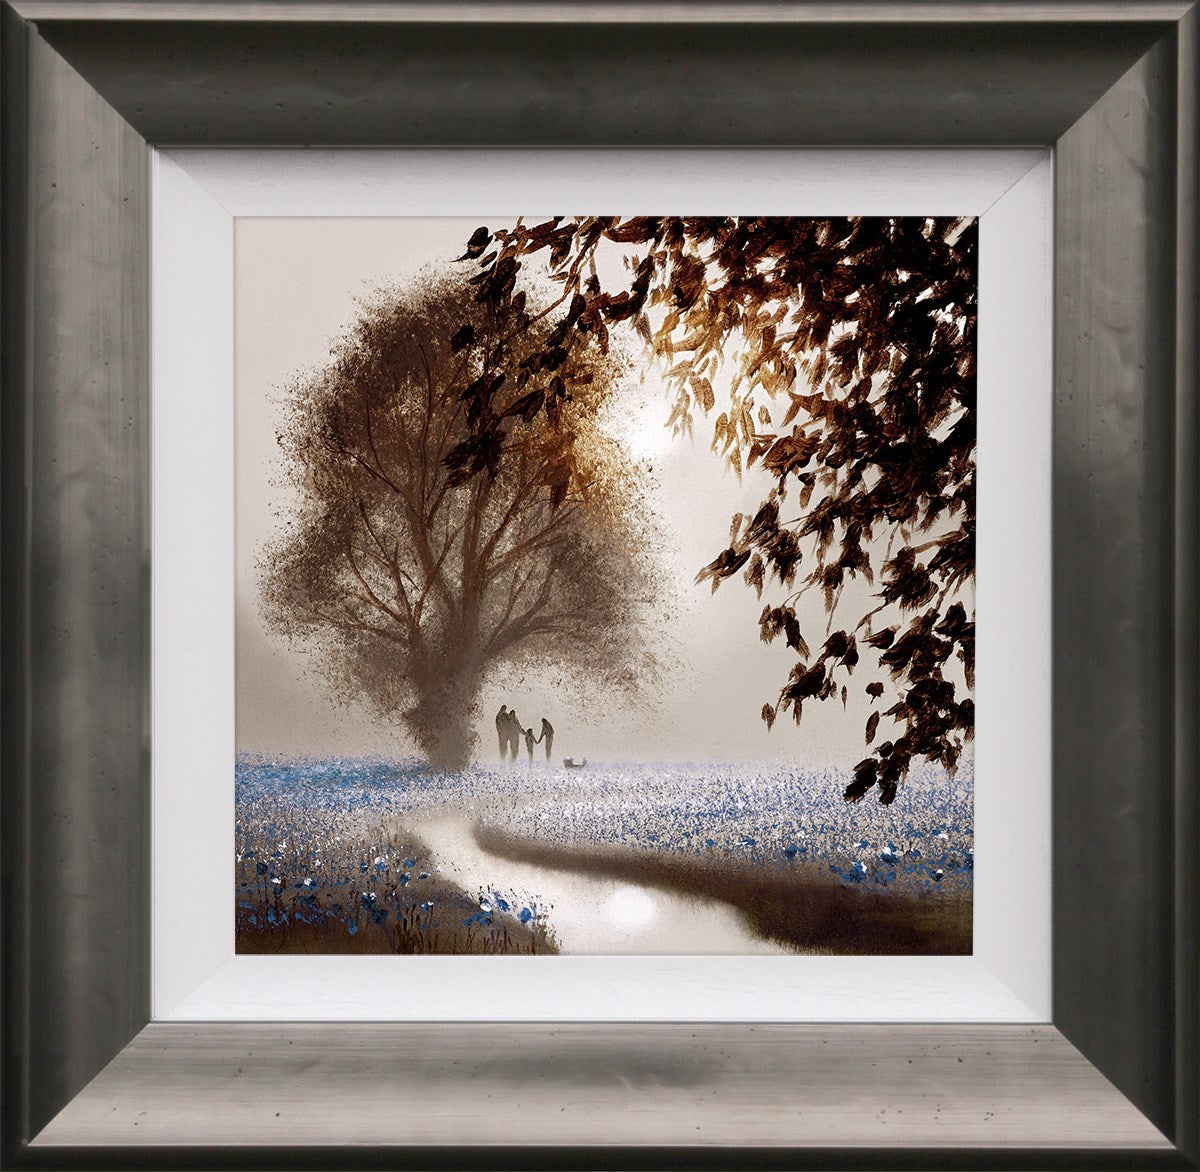 A World of Dreams limited edition print by John Waterhouse